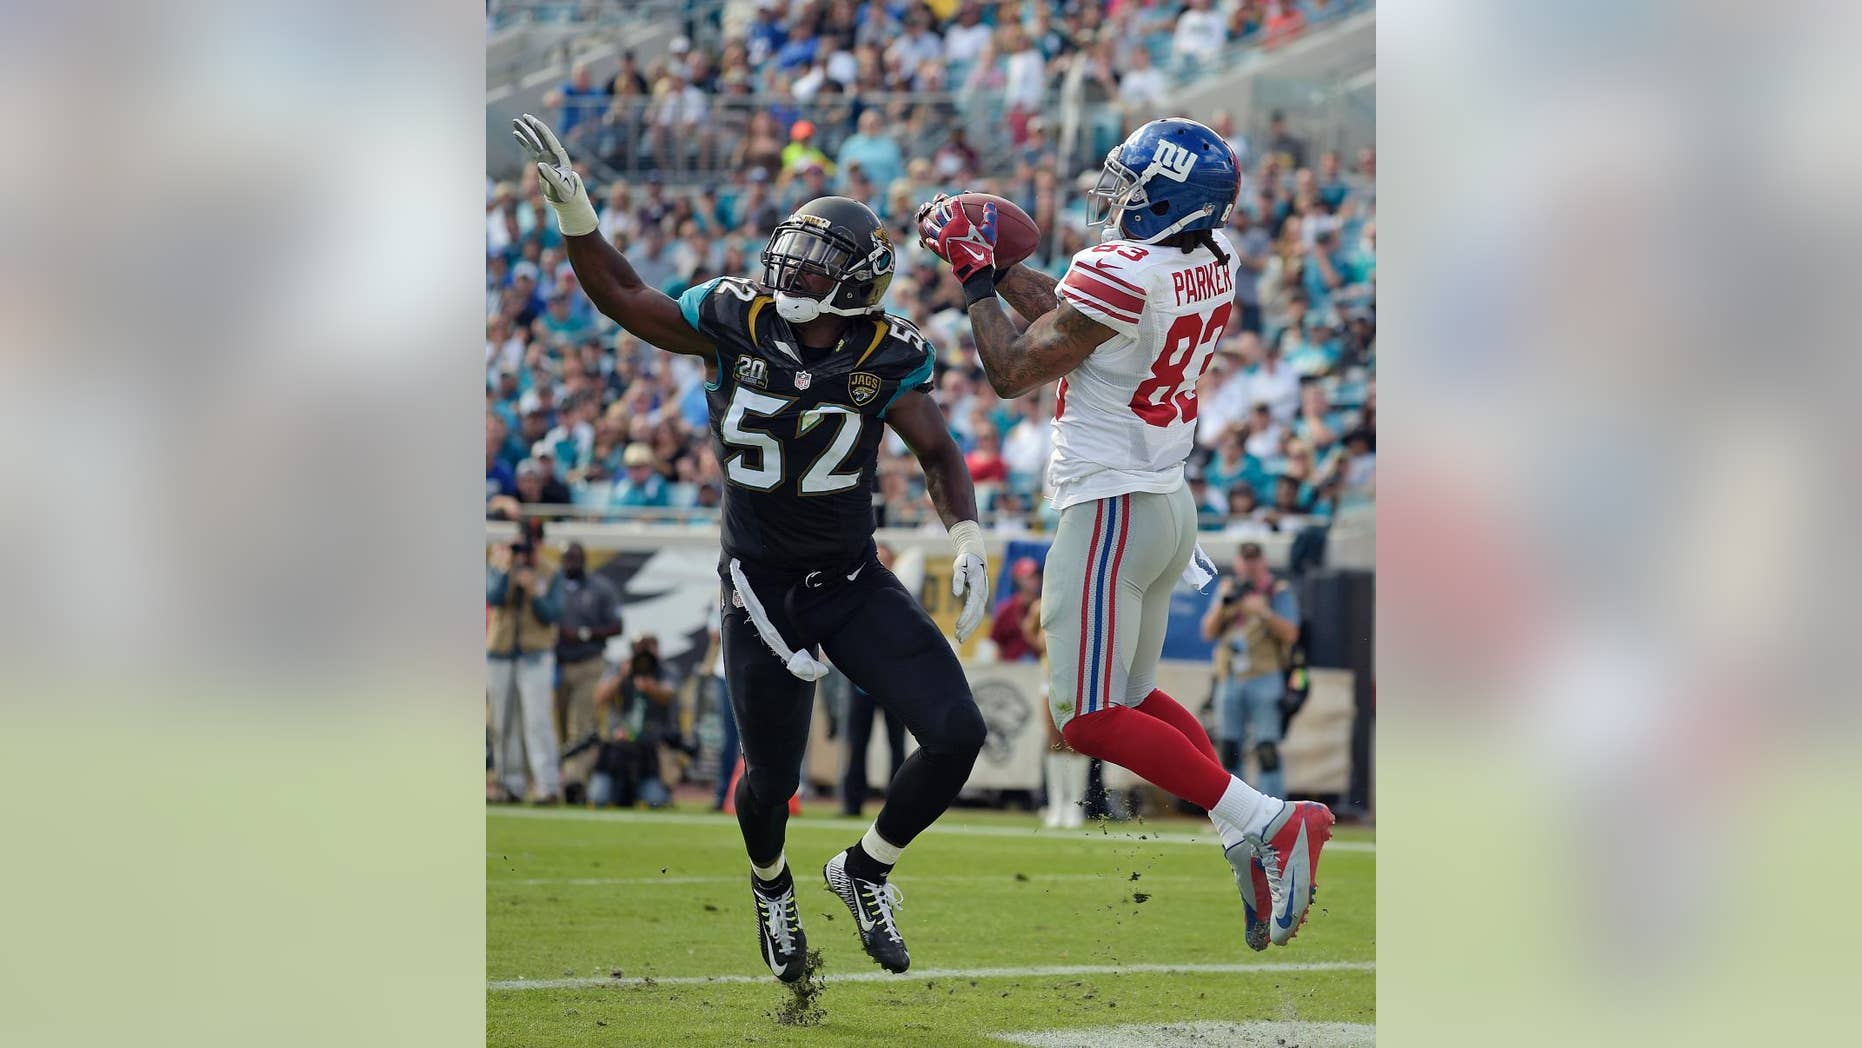 New York Giants wide receiver Preston Parker (83) catches a 3-yard touchdown pass in front of Jacksonville Jaguars outside linebacker J.T. Thomas (52) during the first half of an NFL football game in Jacksonville, Fla., Sunday, Nov. 30, 2014. (AP Photo/Phelan M. Ebenhack)